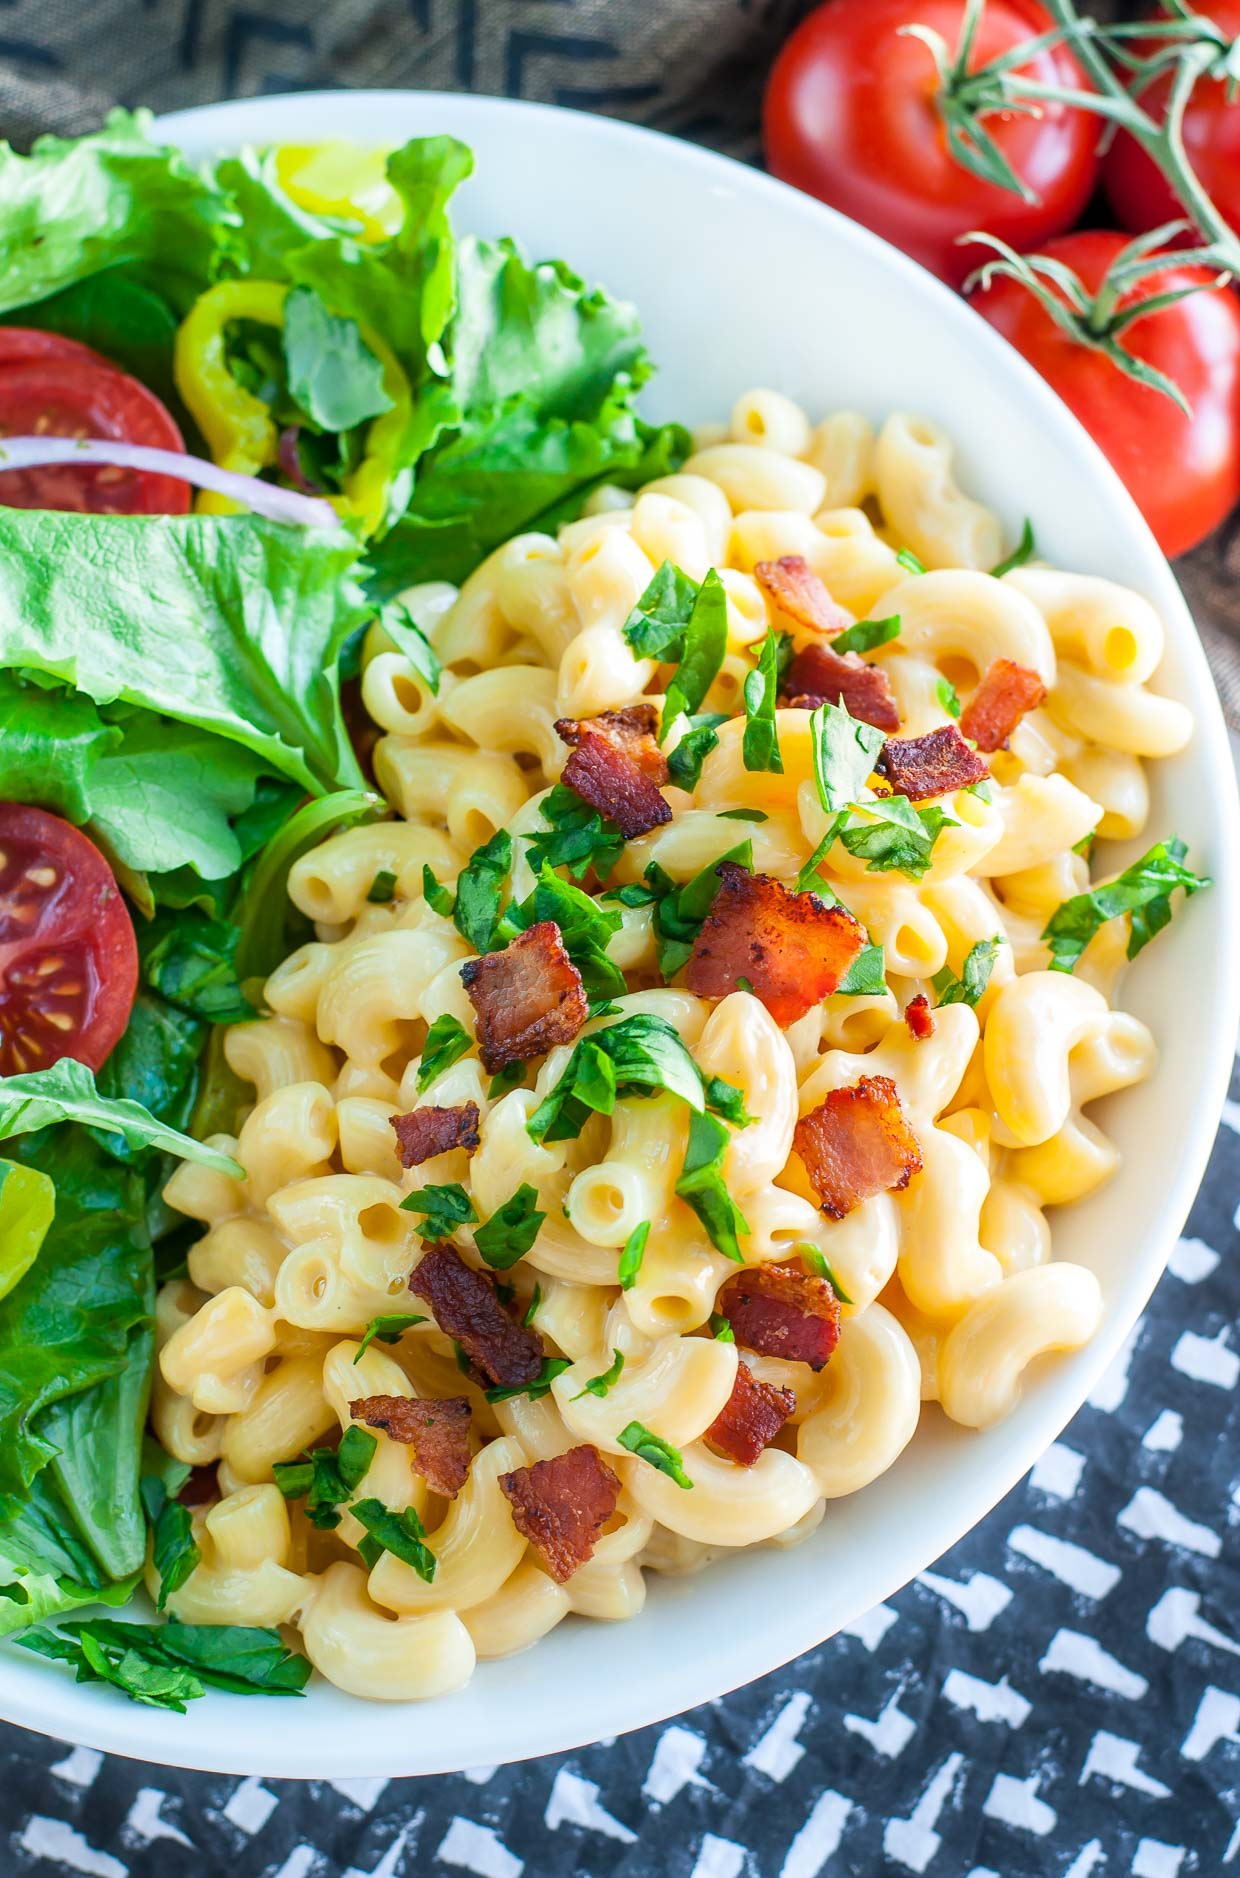 Sketch-Free 3 Minute Stovetop Mac and Cheese